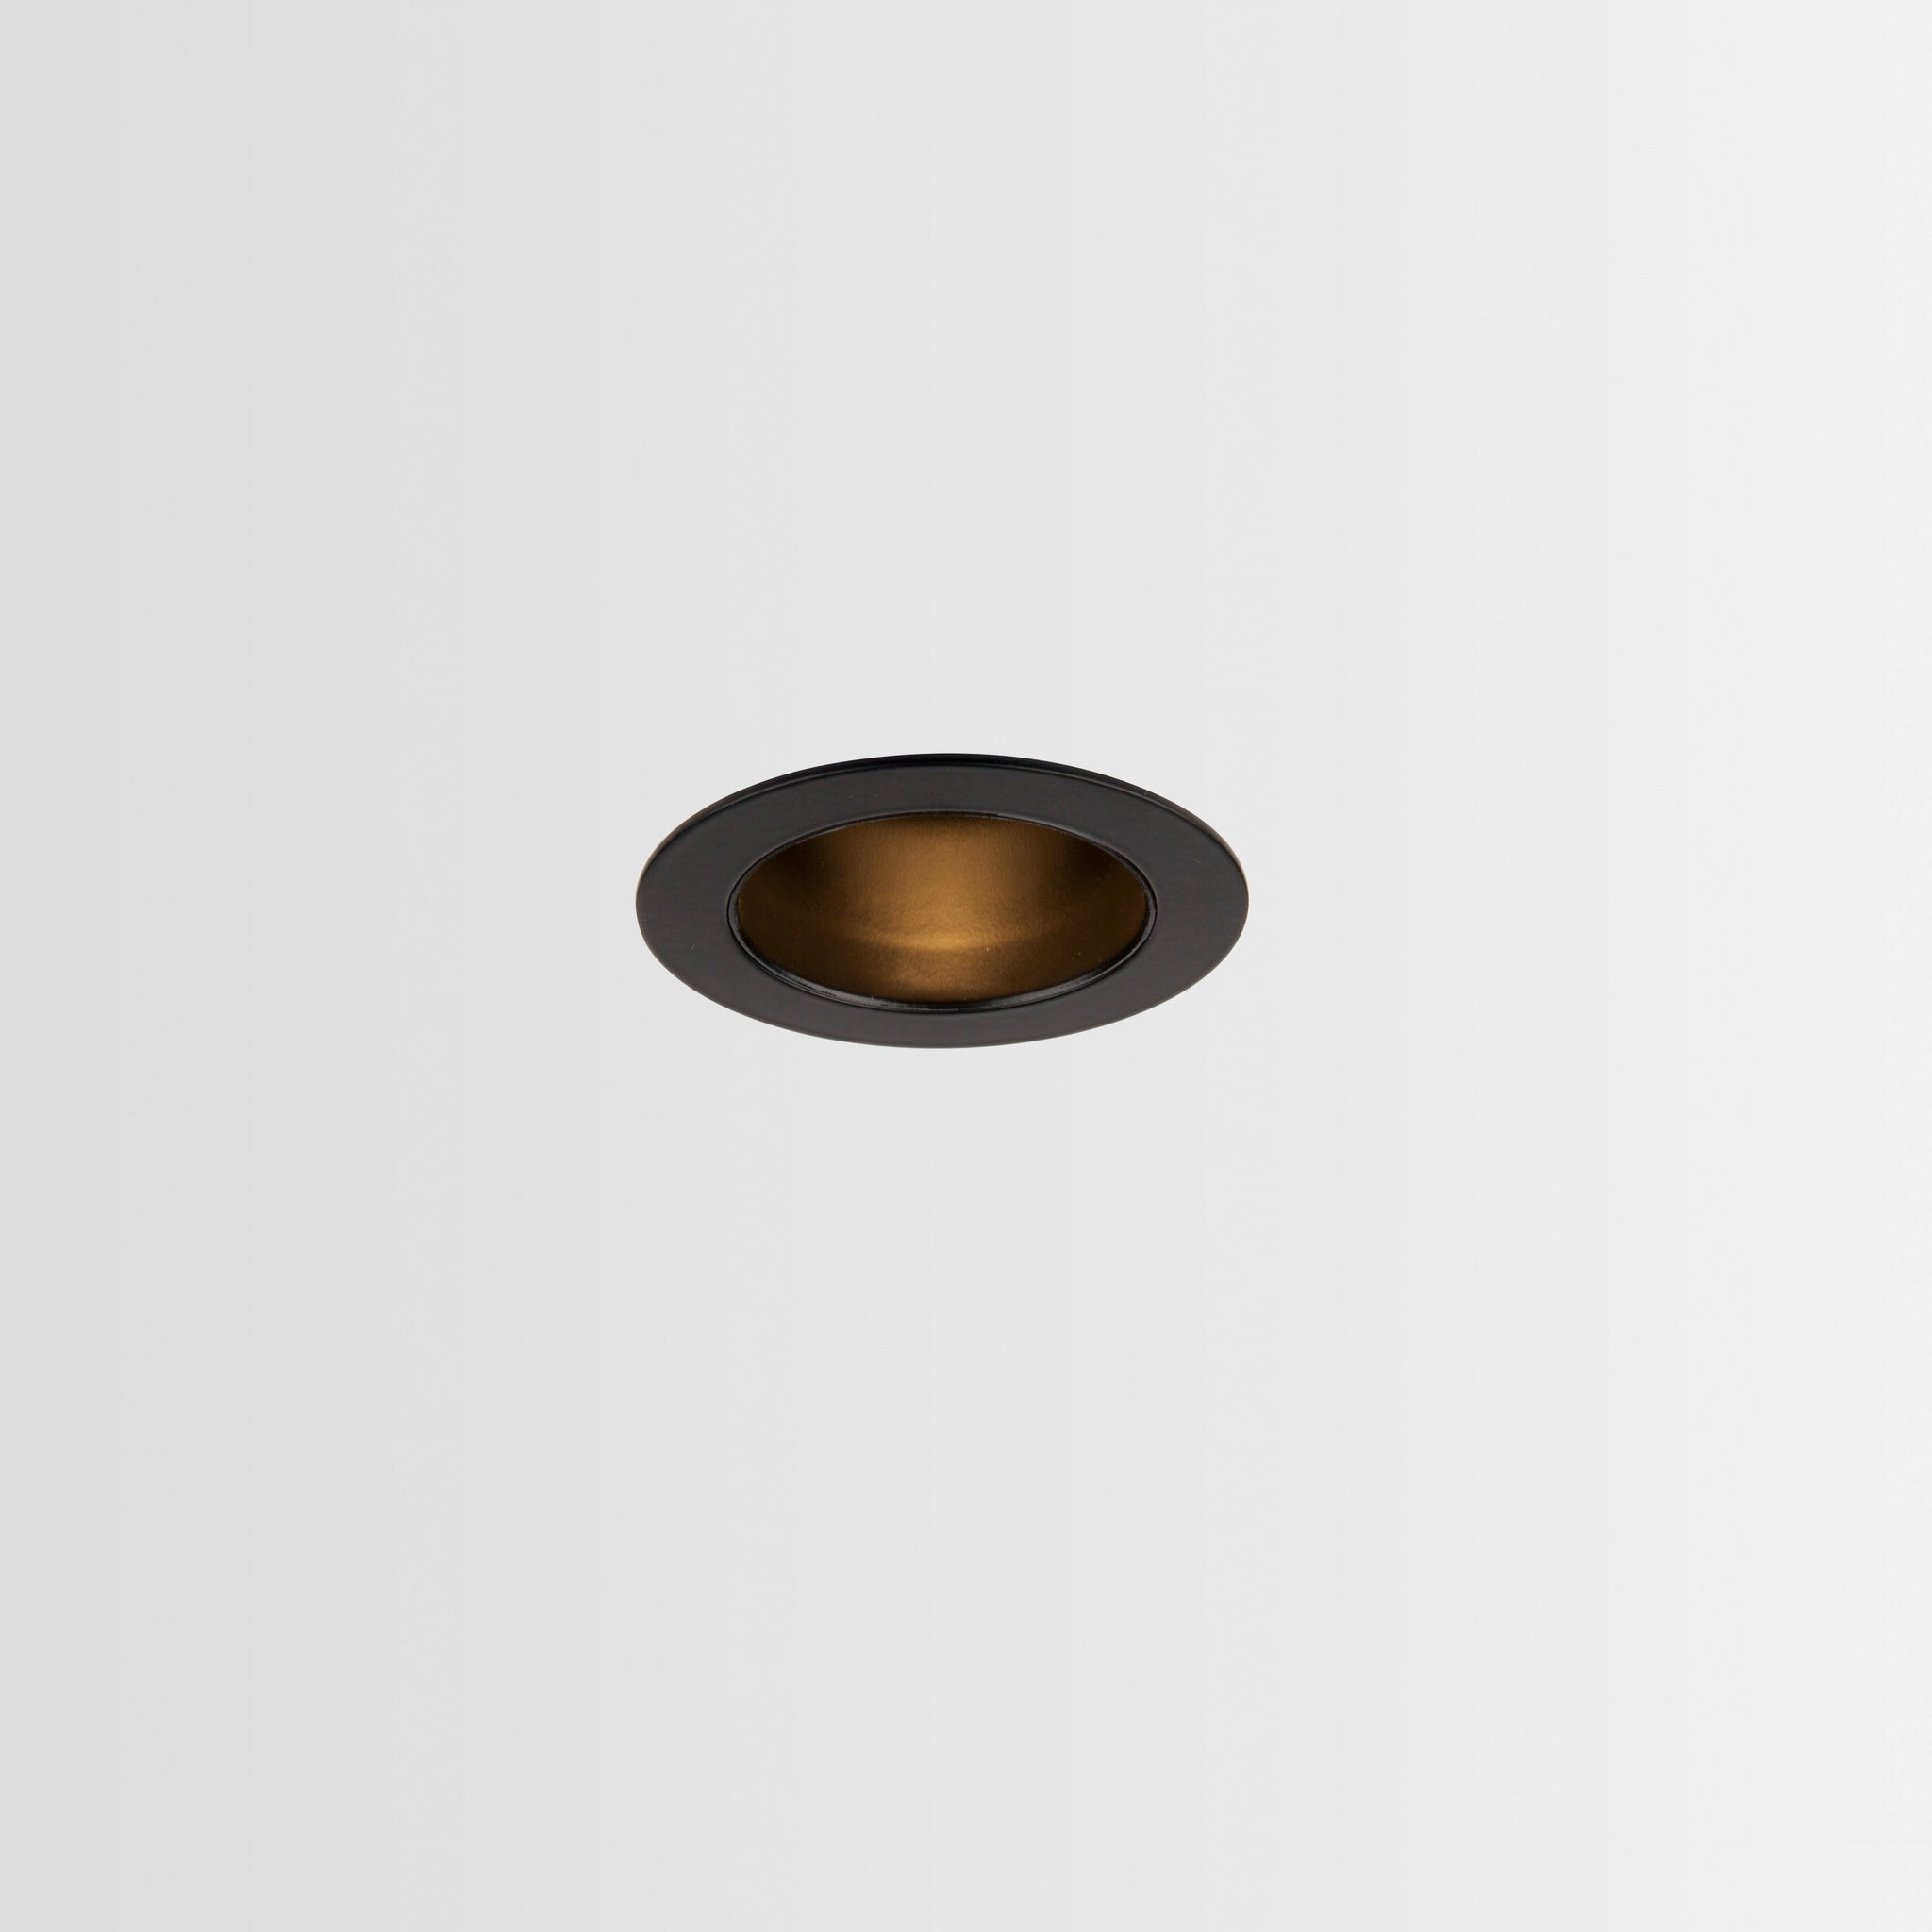 Miniature 6W Low Glare Recessed LED Down Light.  Black Finish.